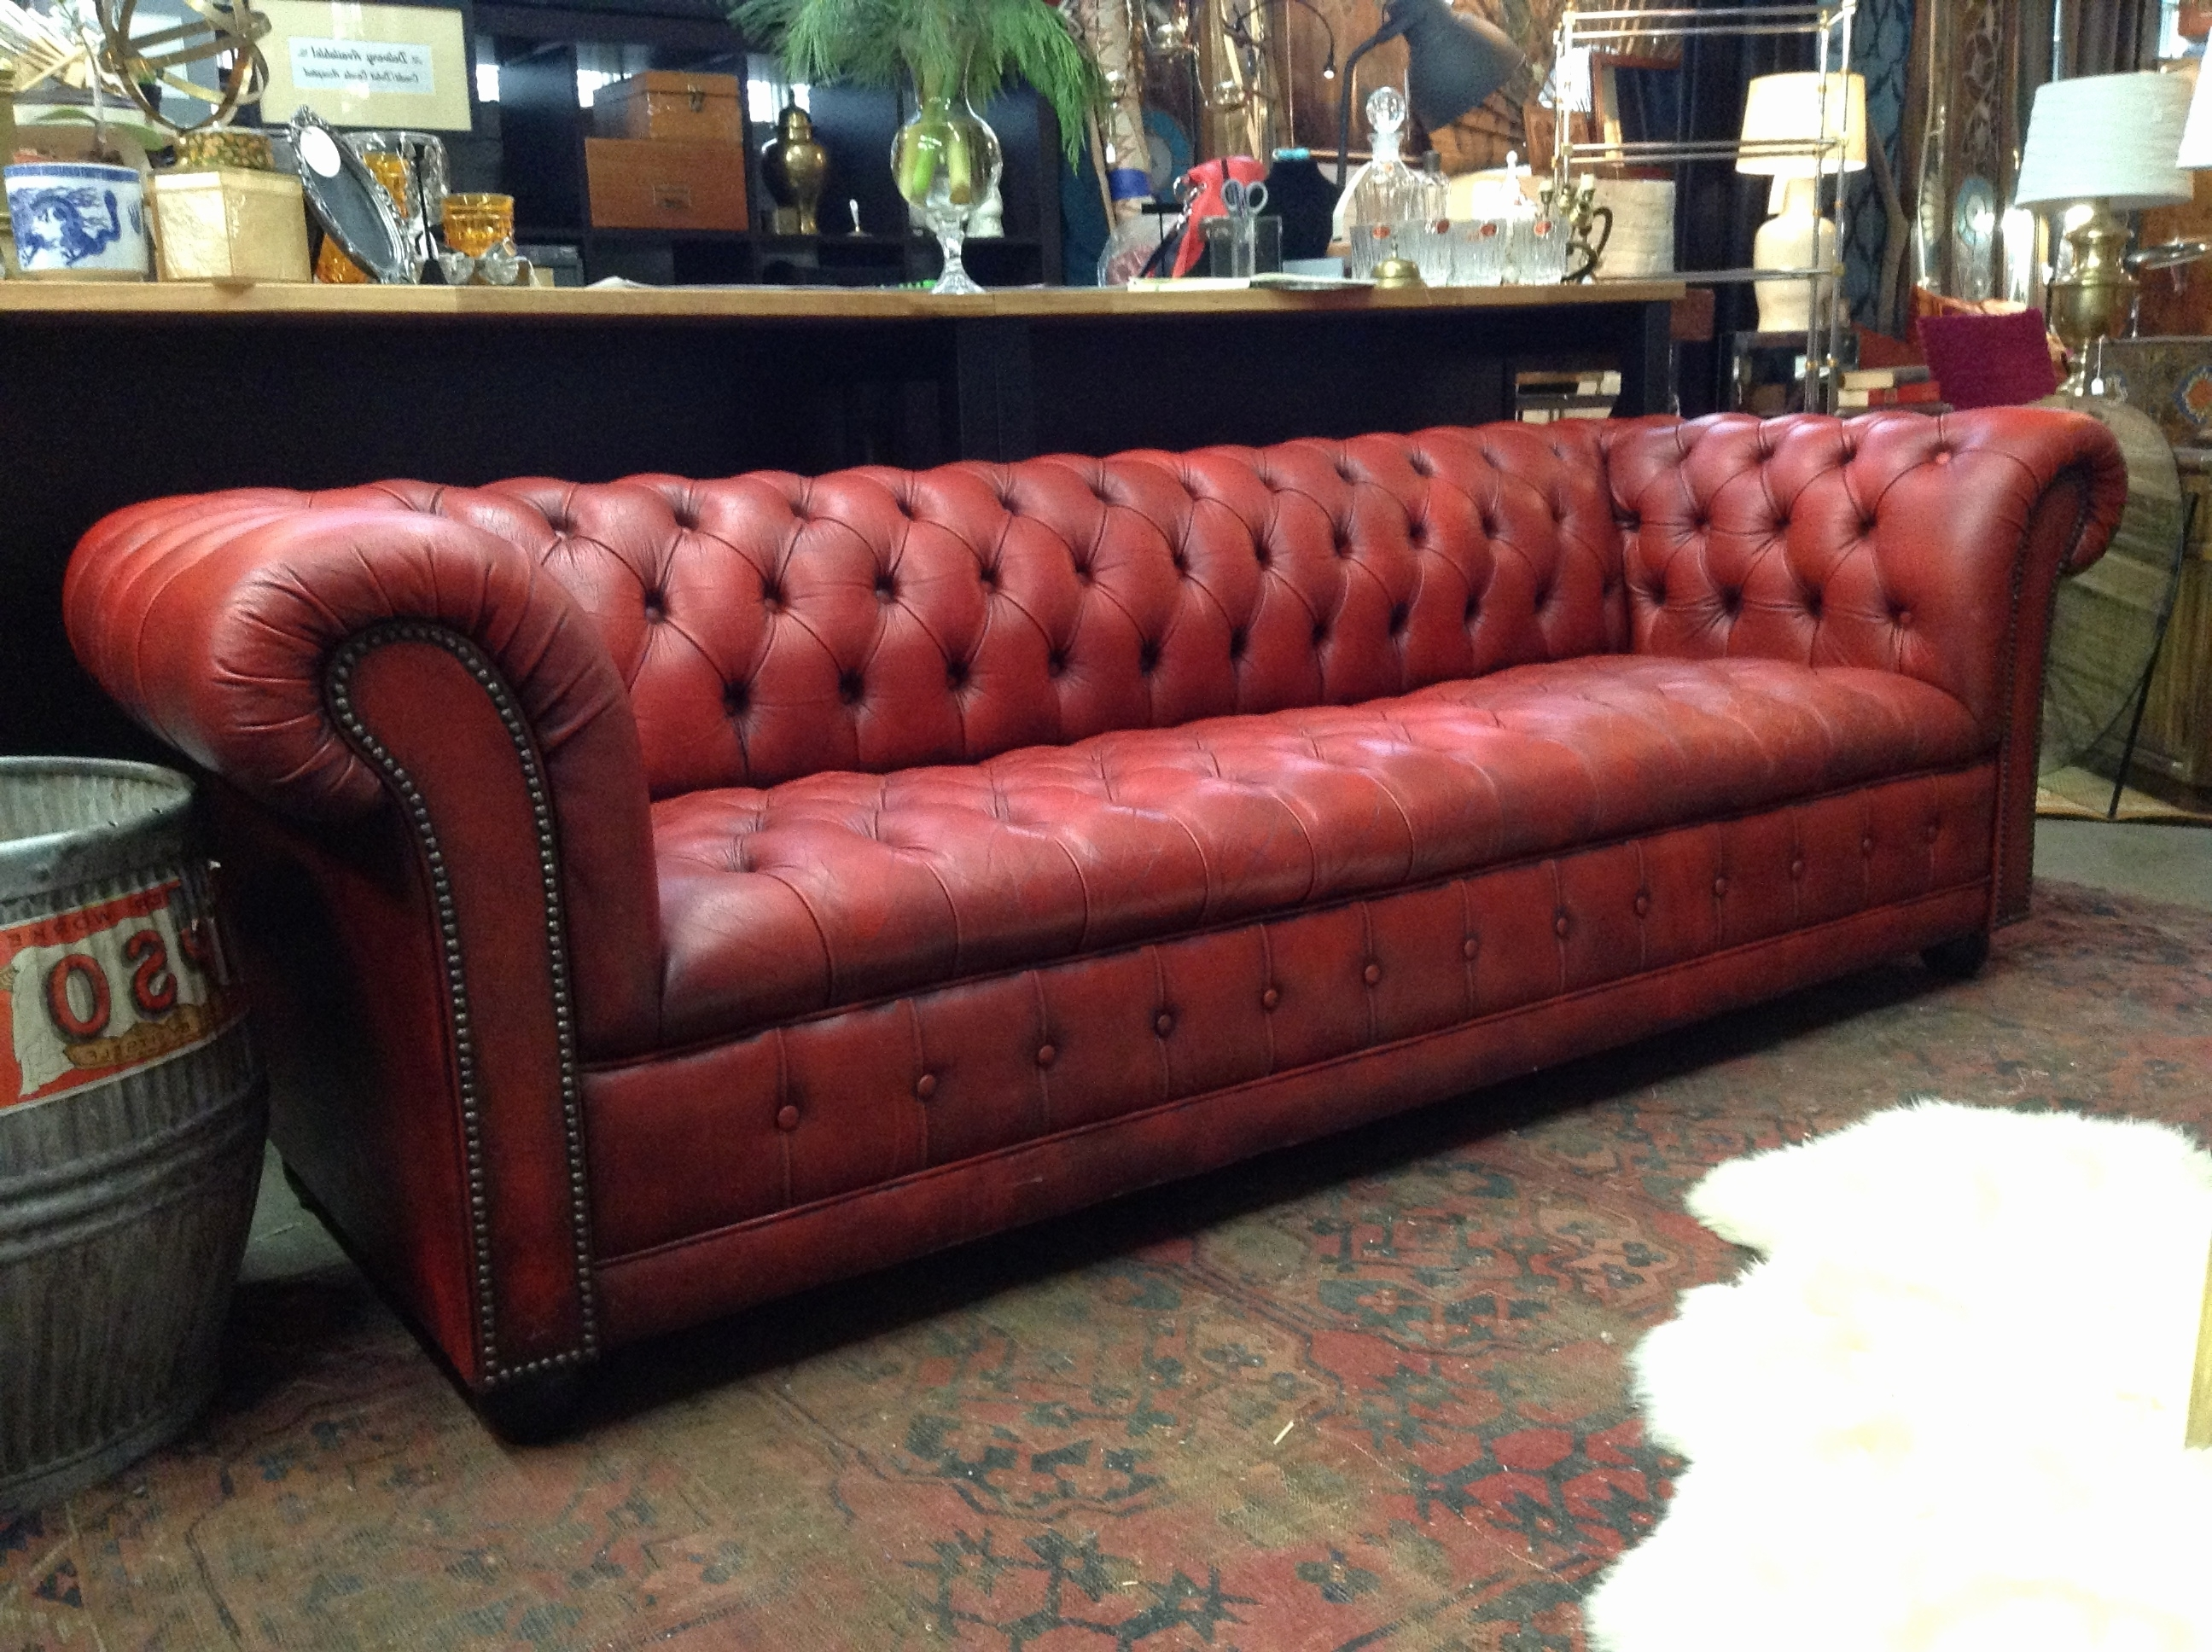 Fashionable Unique Leather Chesterfield Sleeper Sofa 2018 – Couches And Sofas In Tufted Leather Chesterfield Sofas (View 6 of 15)